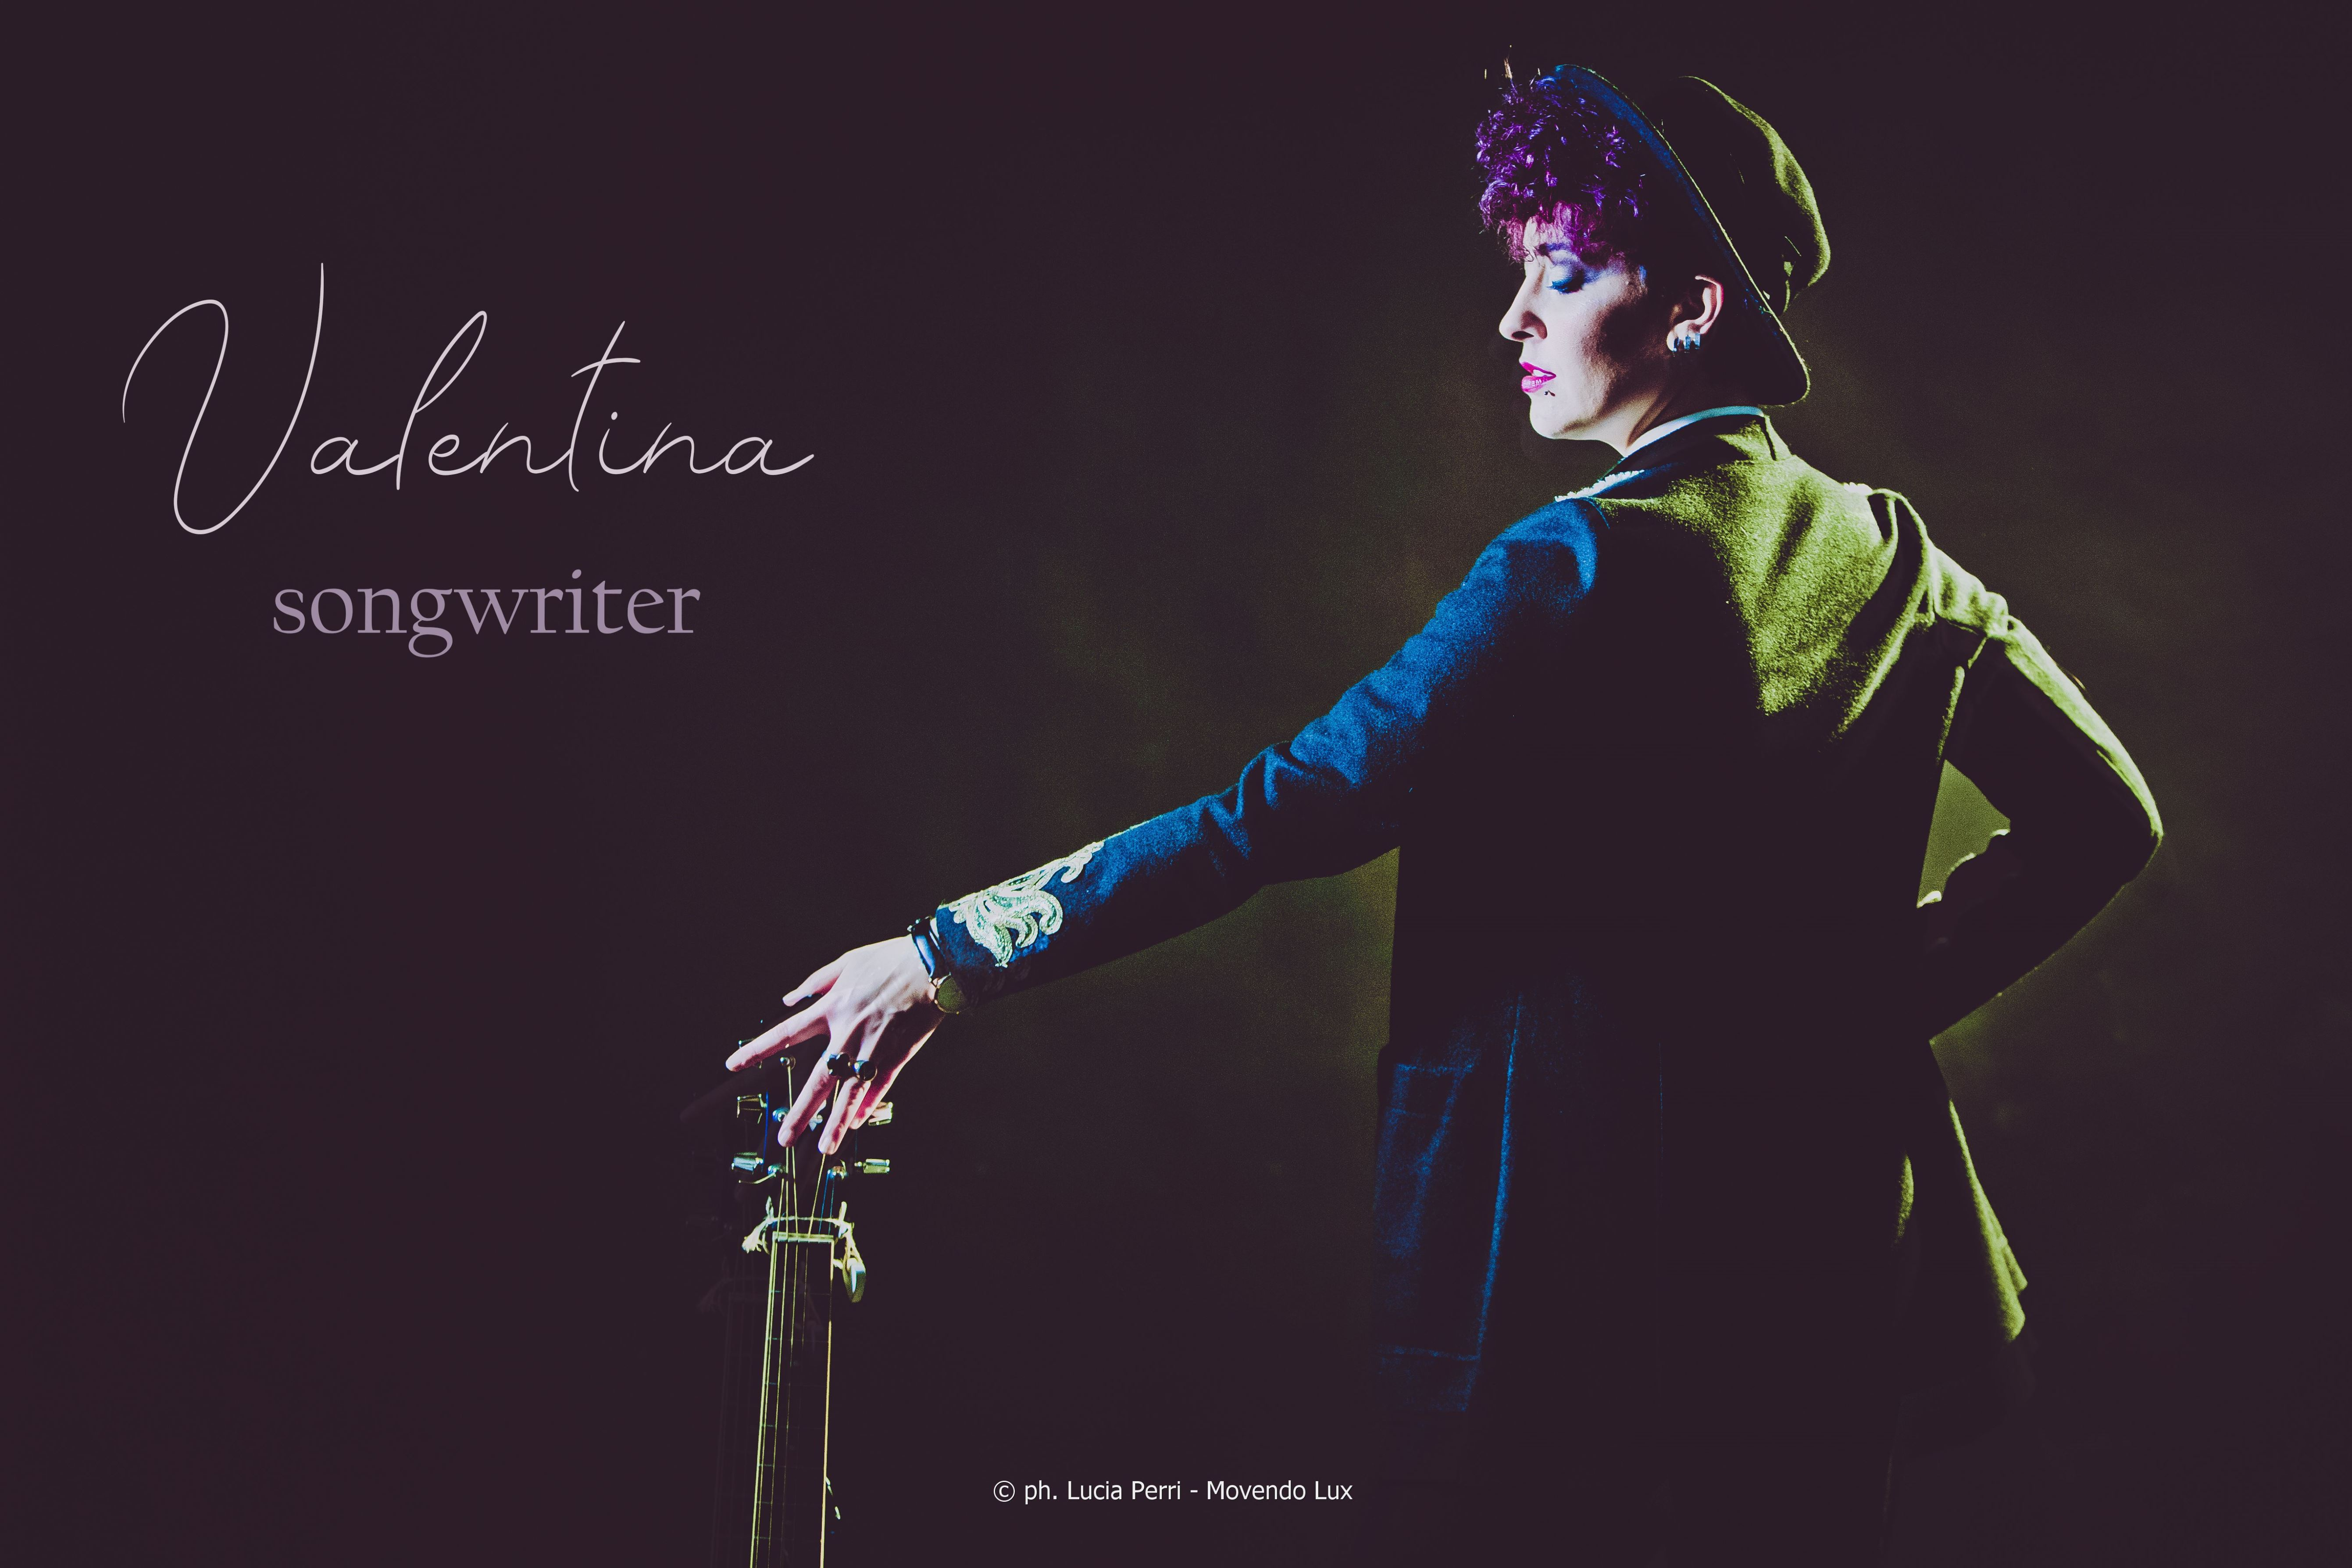 valentina-songwriter-1